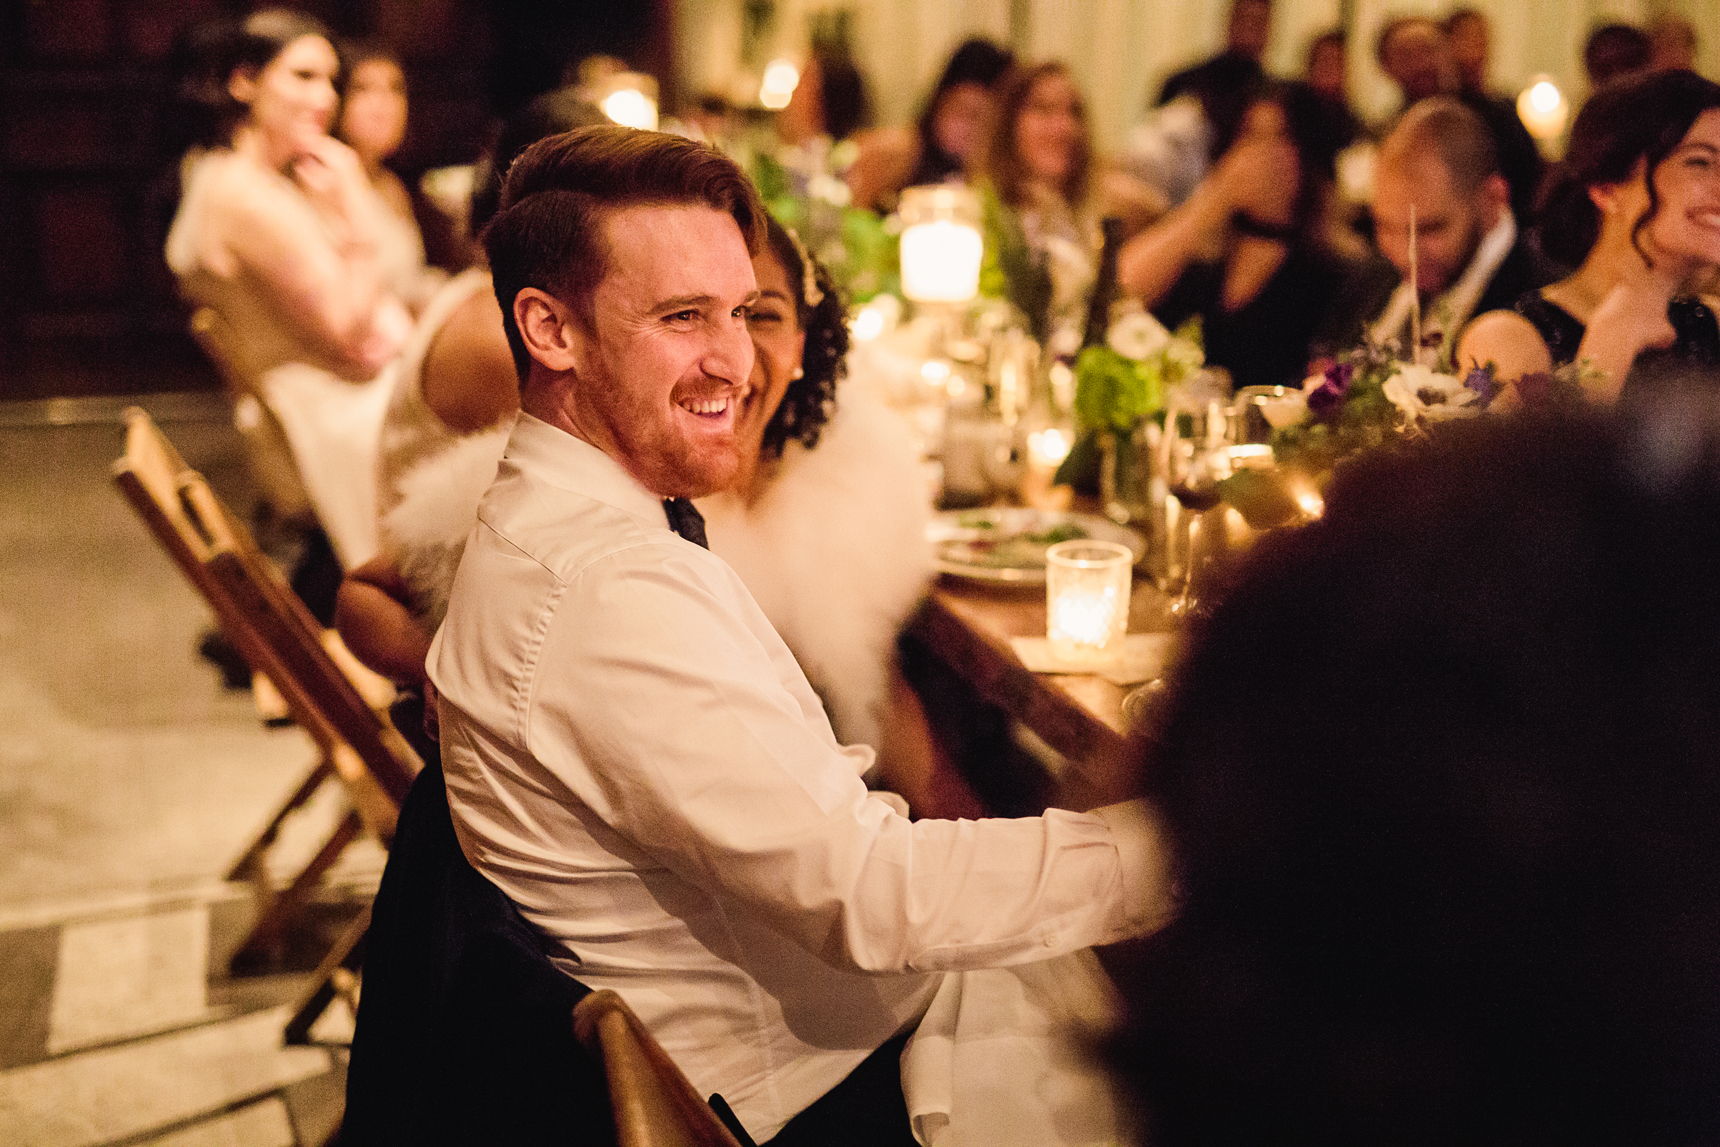 KP_BrooklynWinery_Wedding_NewYork_Photographer113.jpg